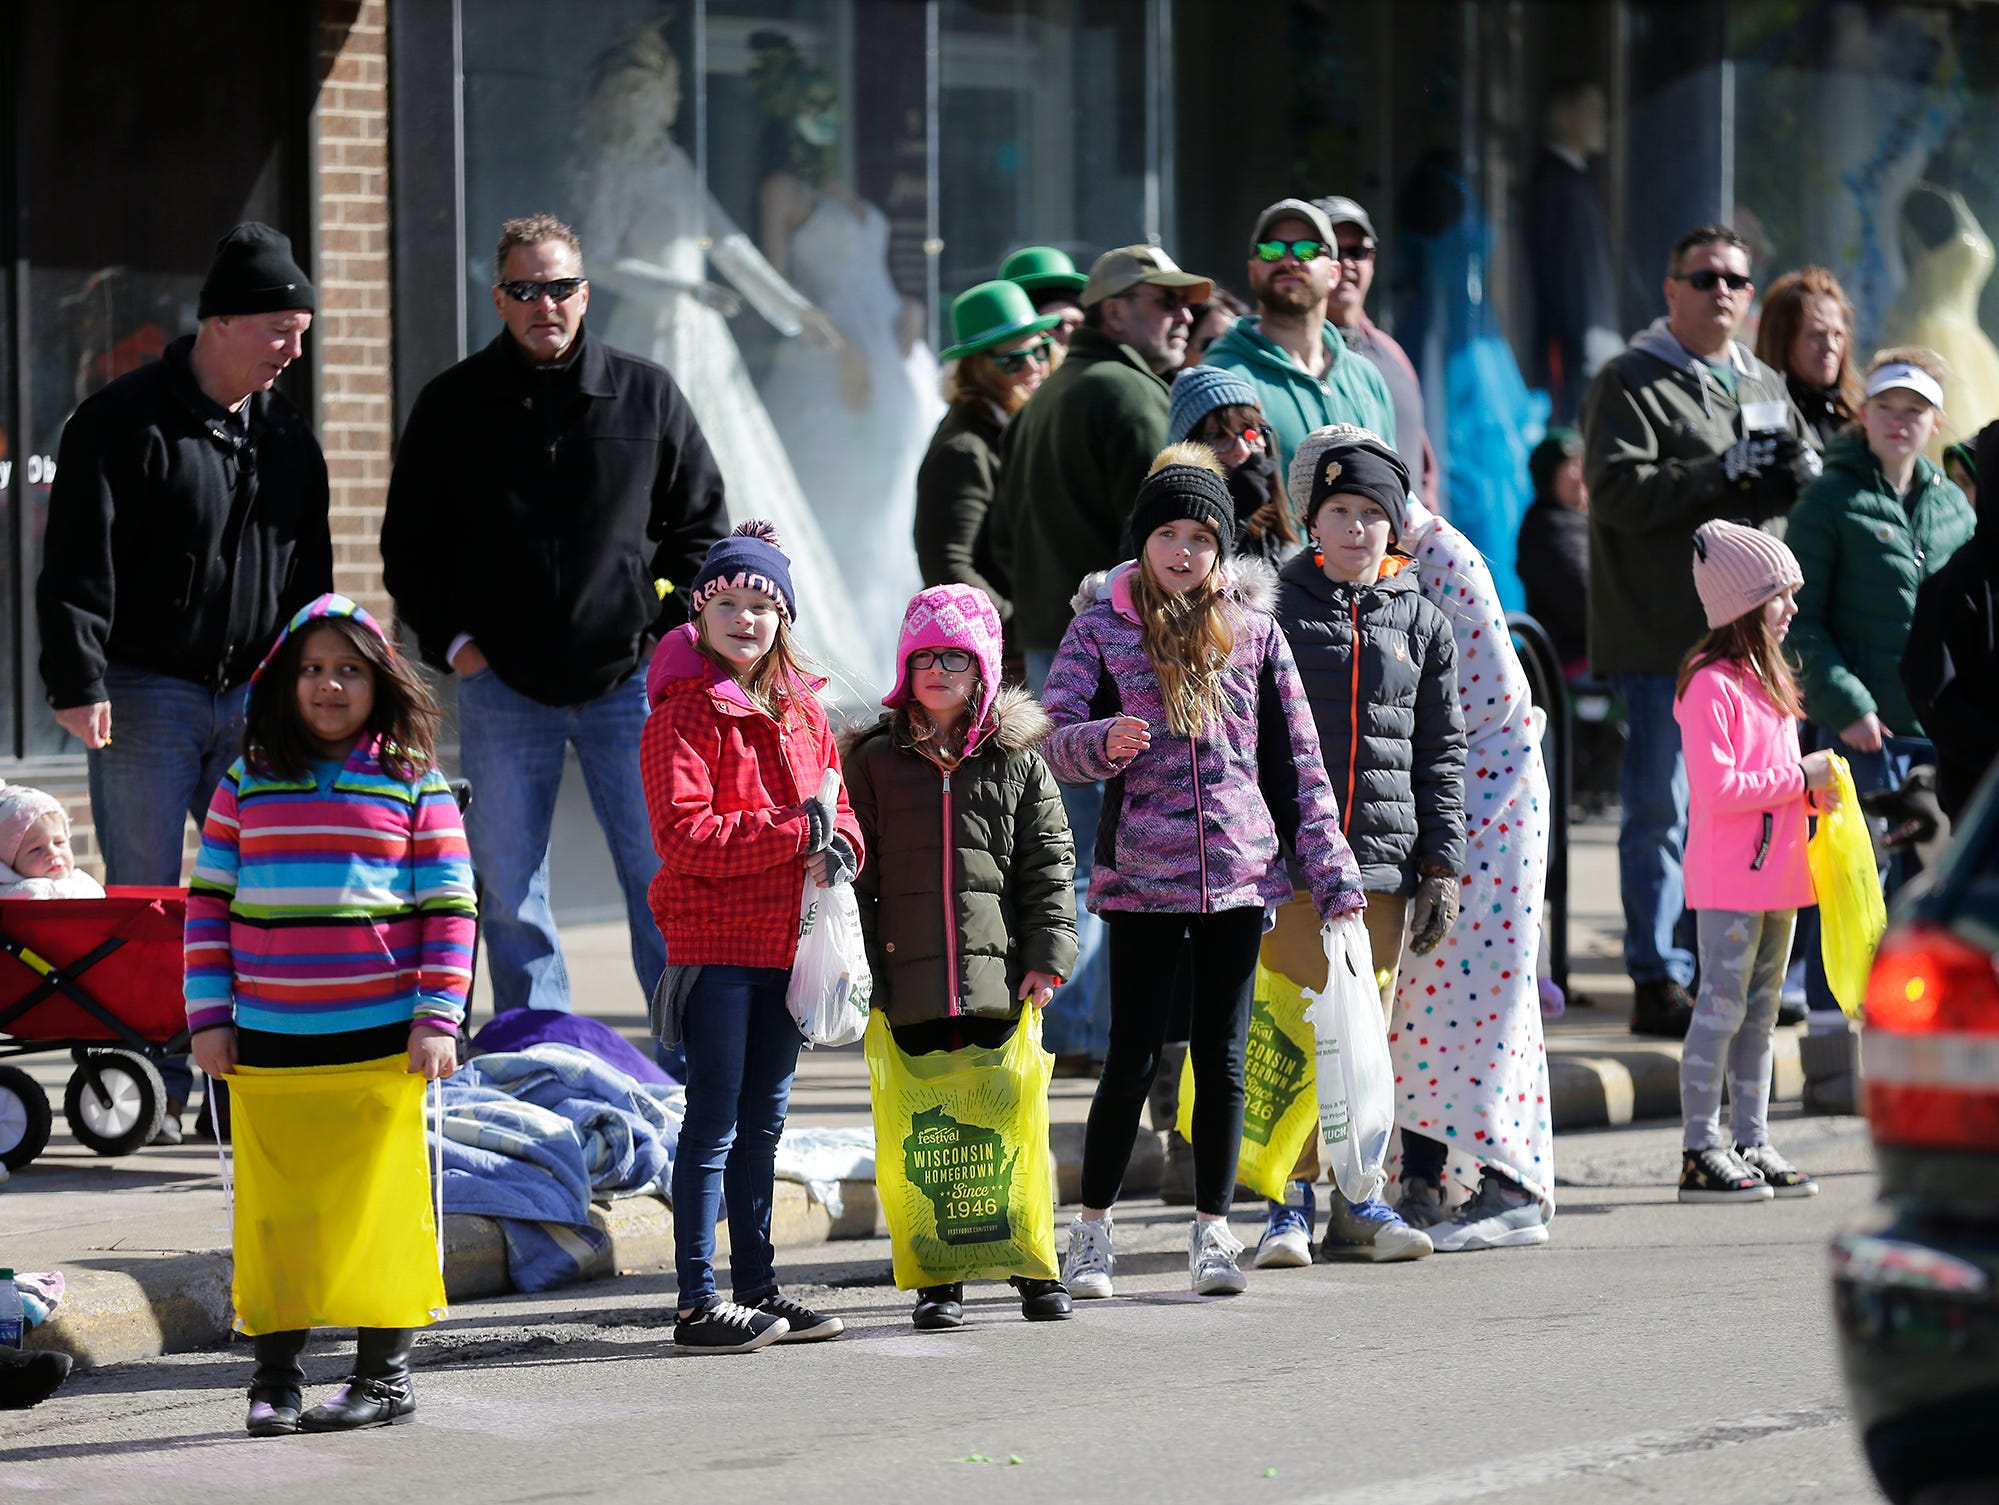 Hundreds of people lined the street Saturday, March 16, 2019 on Main Street in downtown Fond du Lac to watch the City of Fond du Lac St. Patrick's Day Parade .  Doug Raflik/USA TODAY NETWORK-Wisconsin